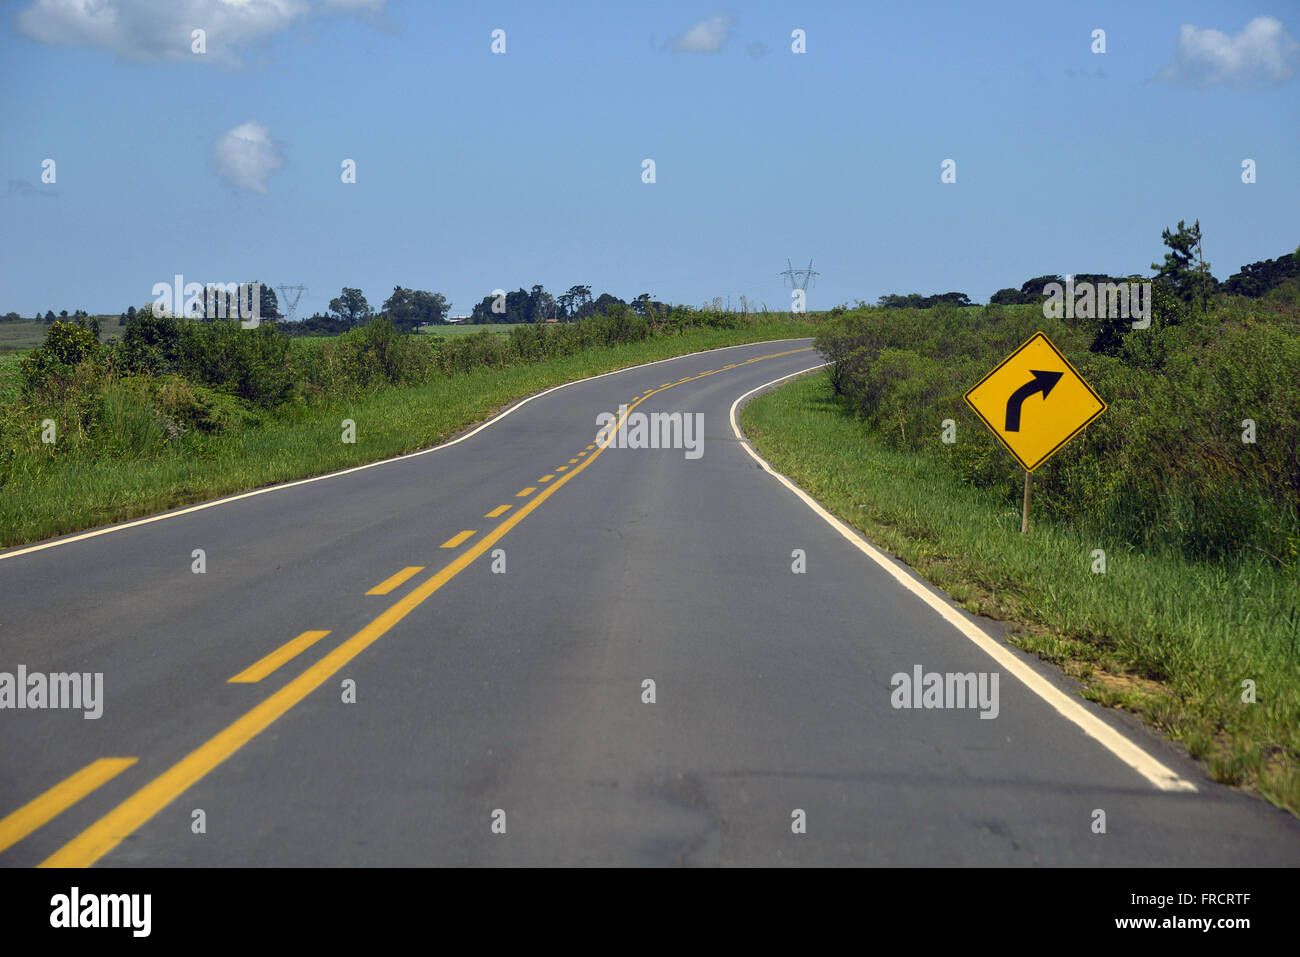 PR-340 highway Sady Francisco de Brito with side signals indicating right turn - Stock Image